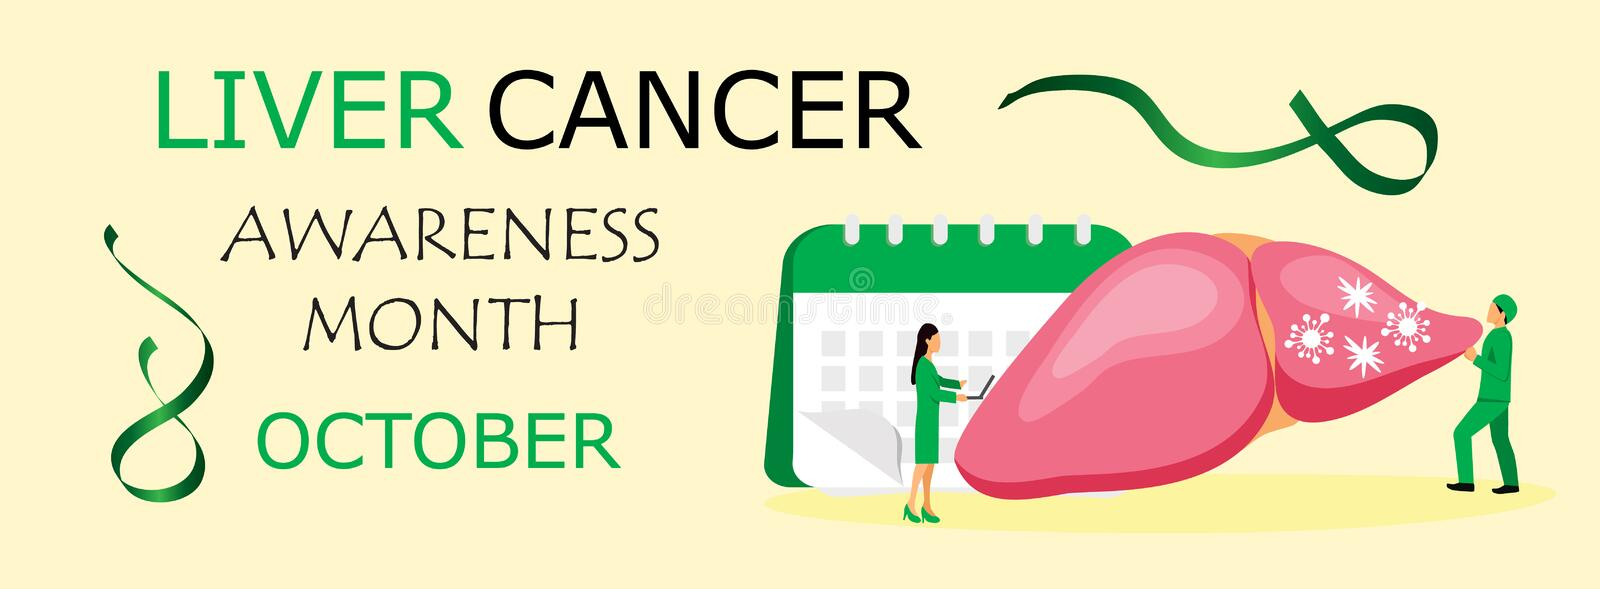 Liver Cancer Awareness Month is organised in October. Green waving ribbon sign on yellow background vector for horizontal banner, web, poster, flyer. Tiny royalty free illustration